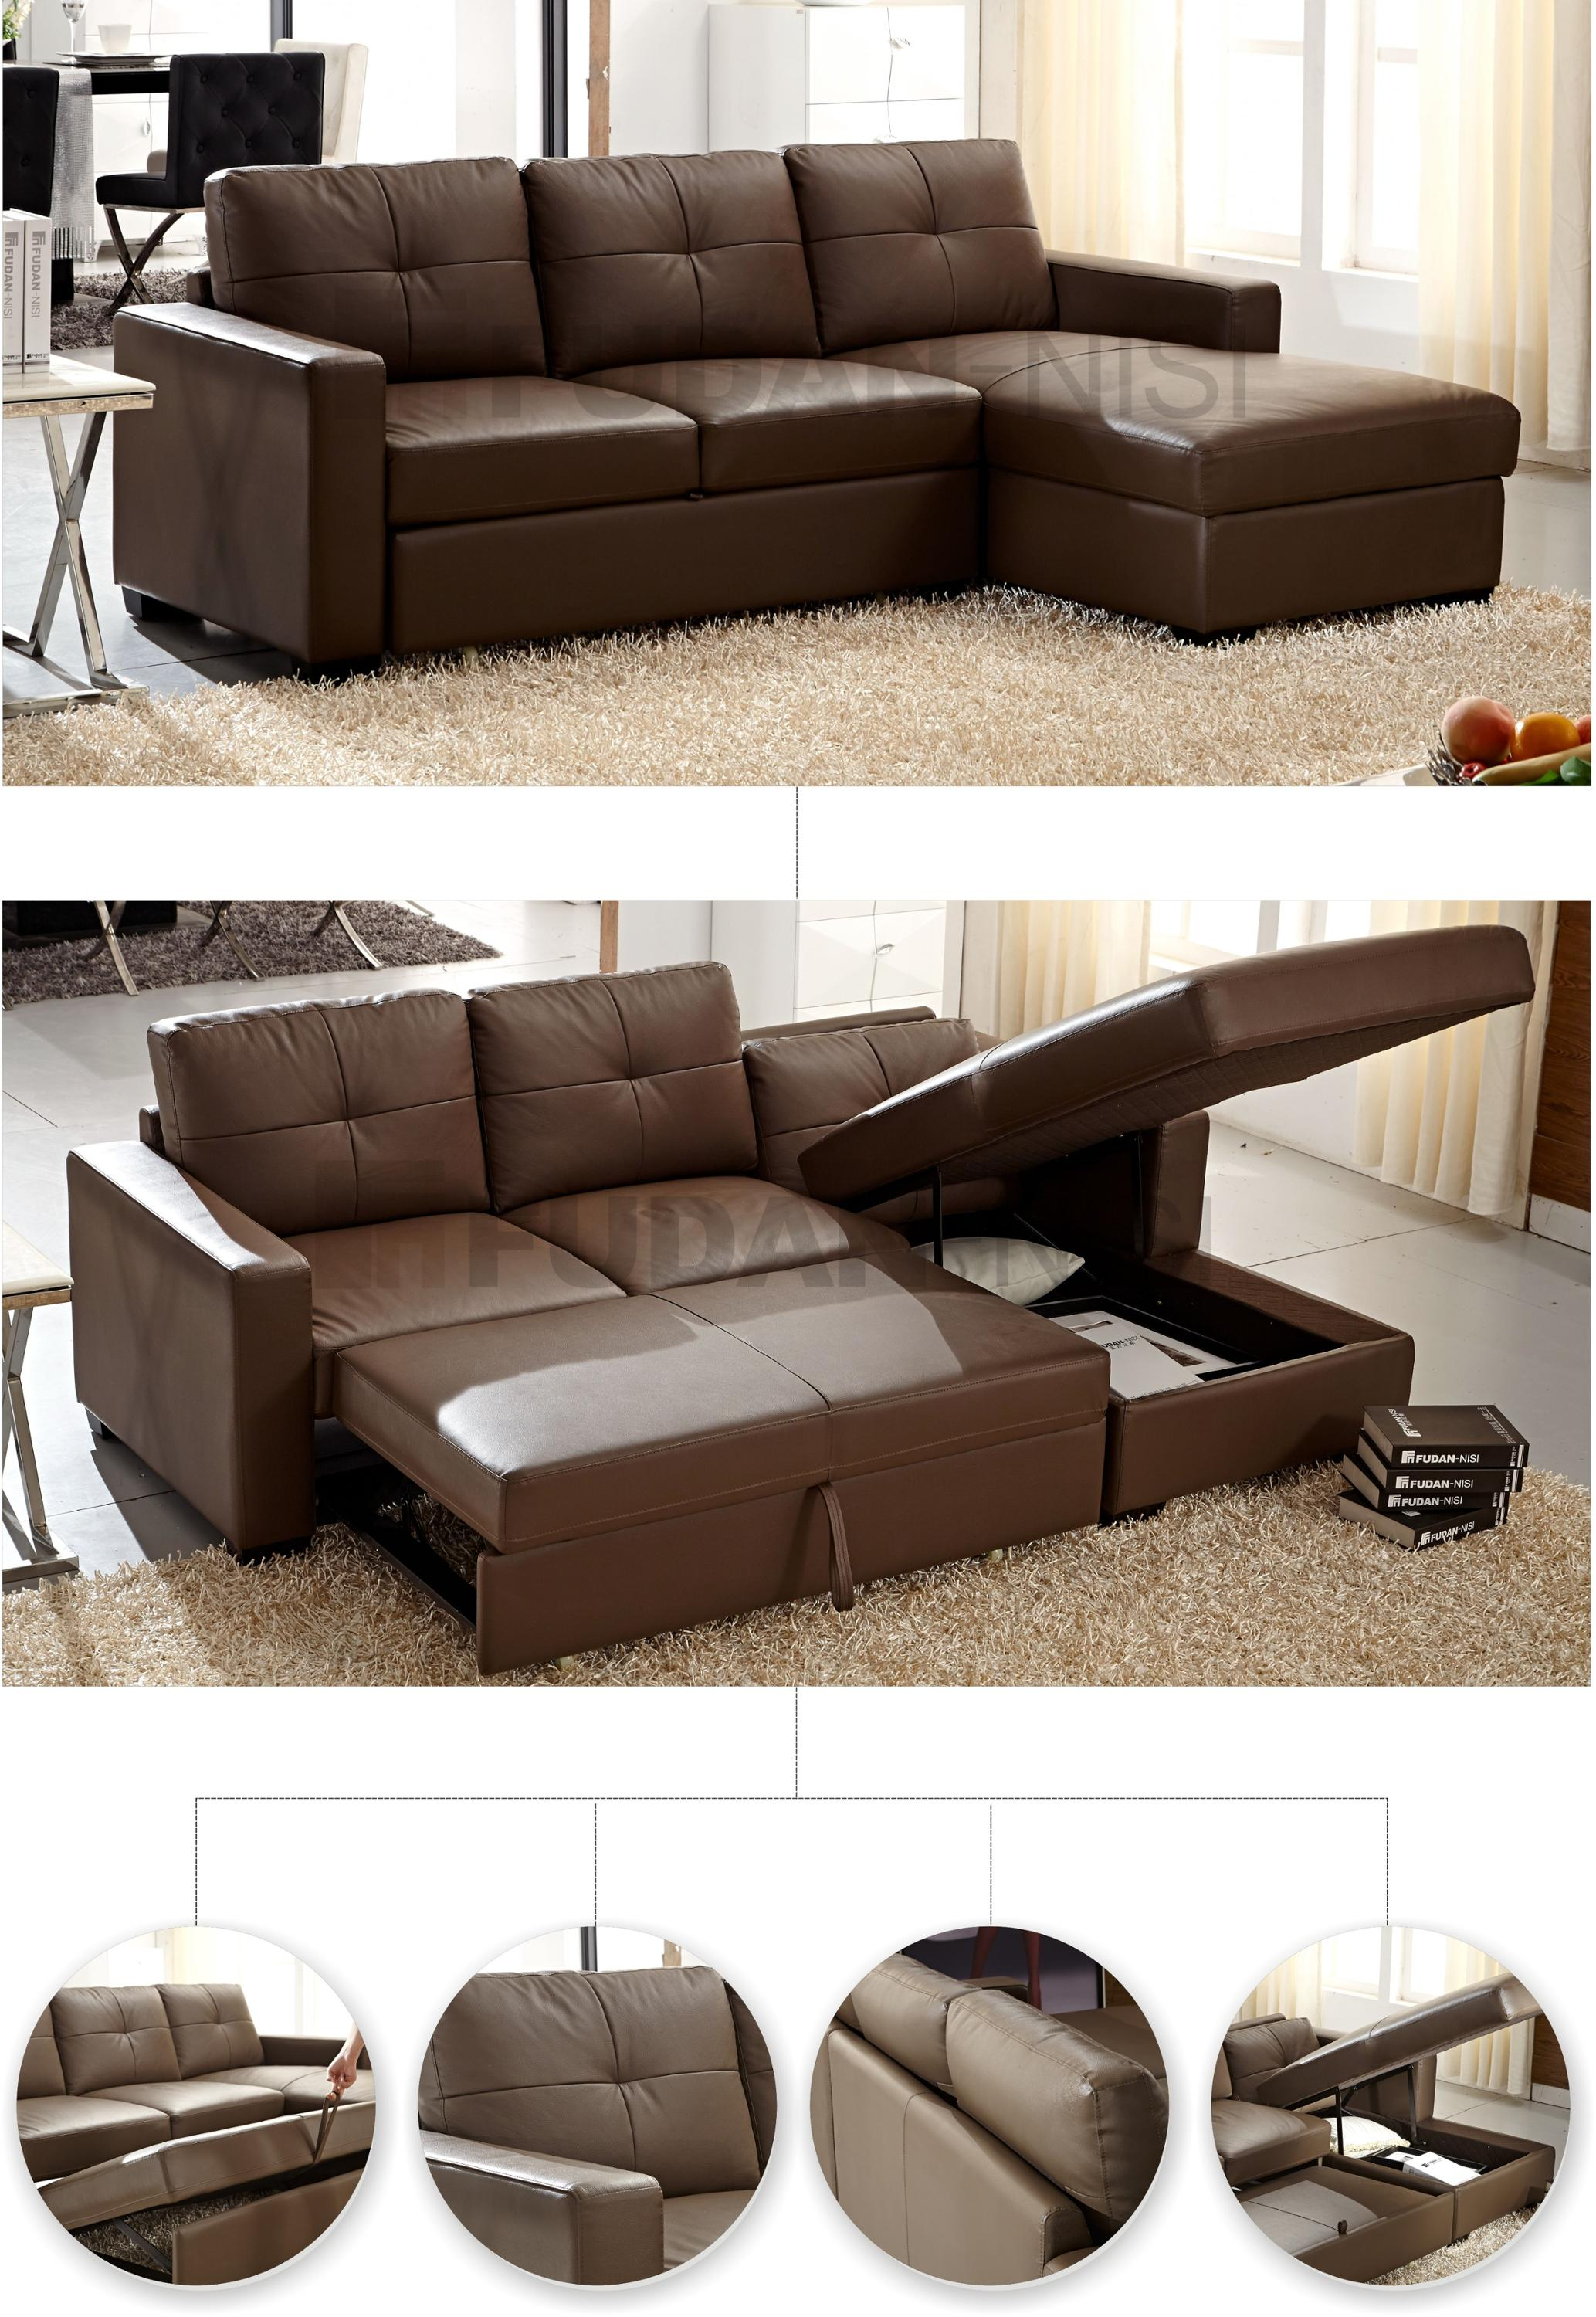 Mini Genuine Leather Sofa Bed For Small Space Buy Leather Sofa Bed Sofa Bed For Small Space Mini Sofa Bed Product On Alibaba Com